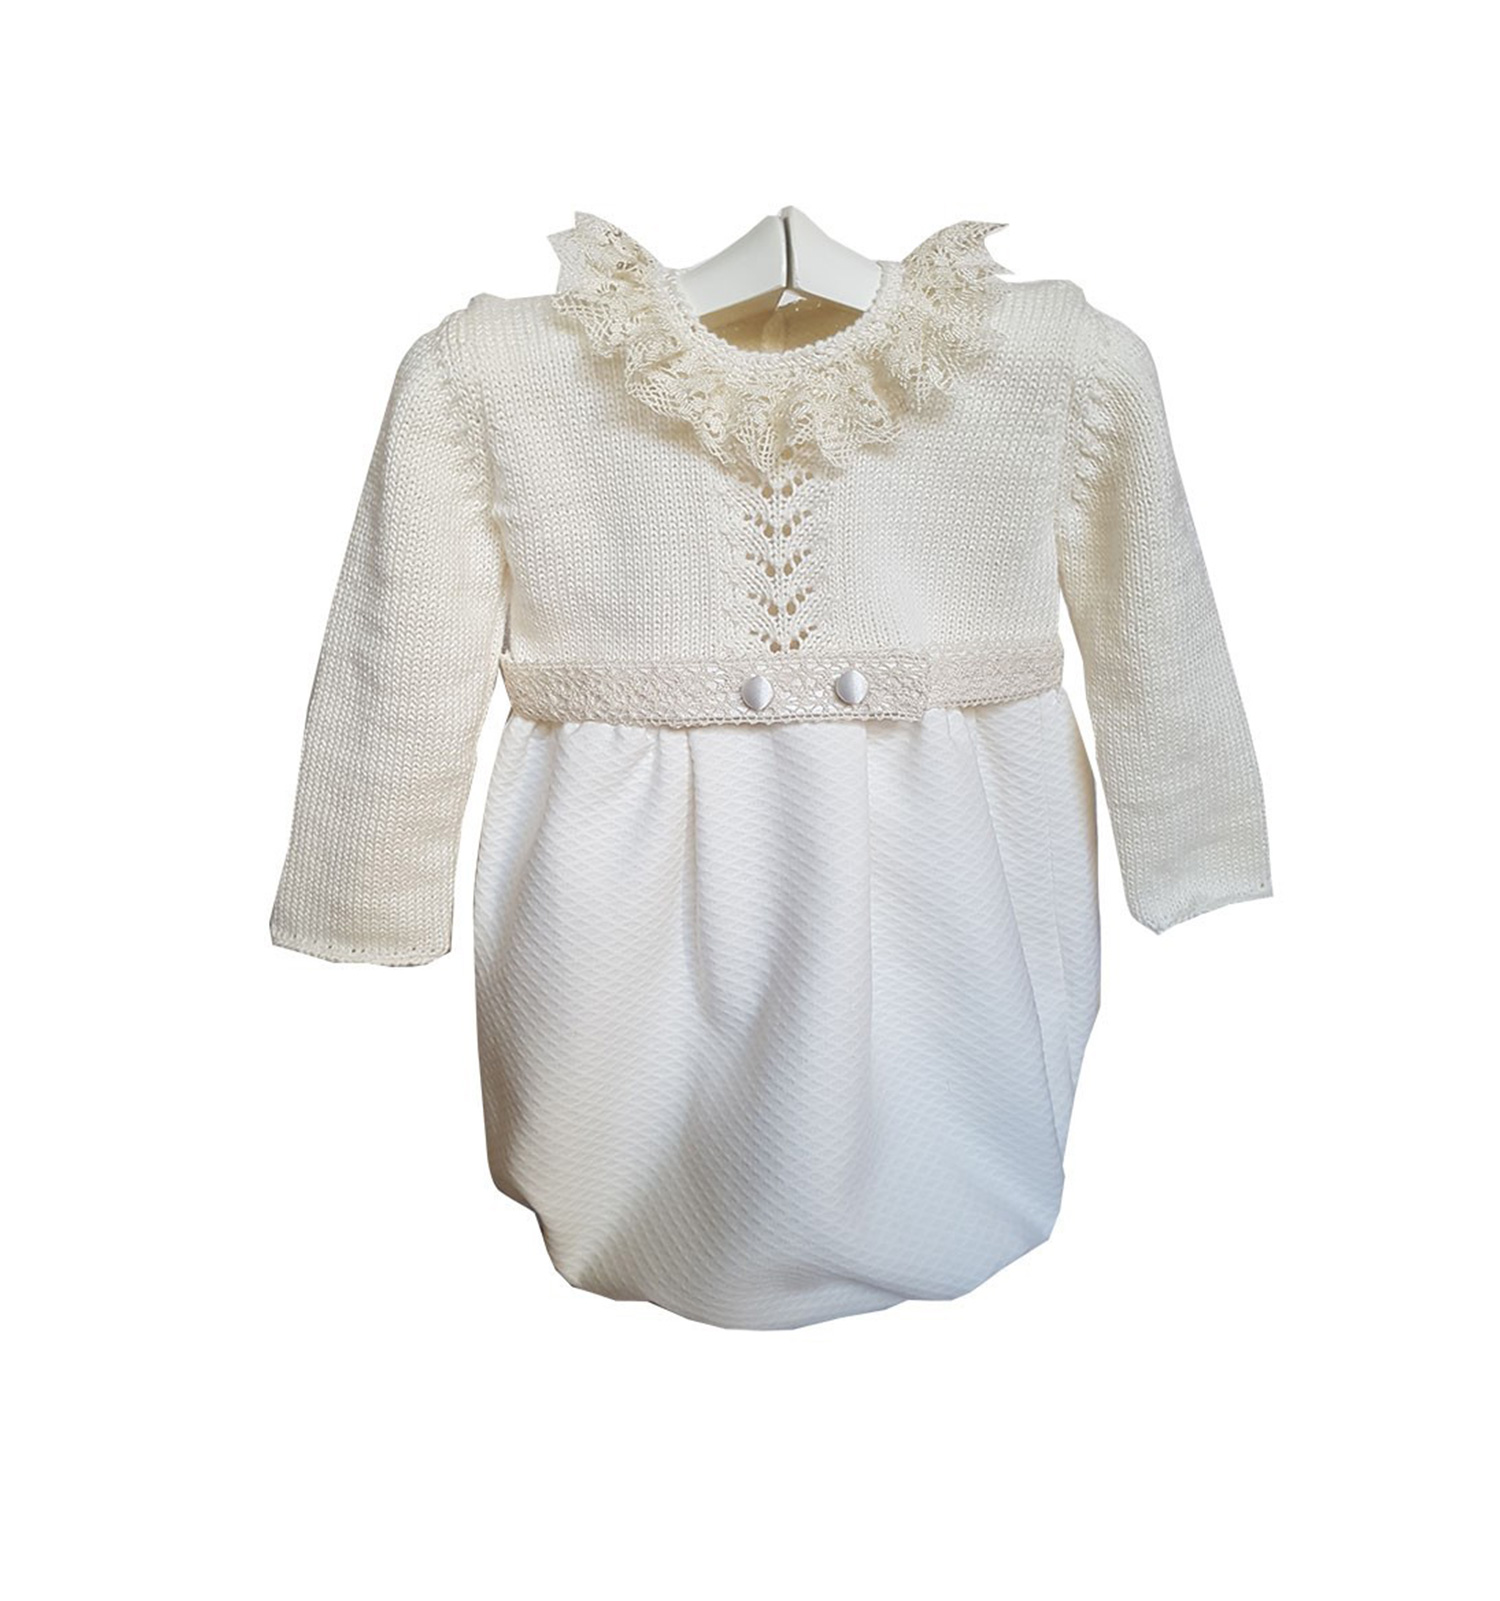 Ceremony and christening gown in merino wool and piqué